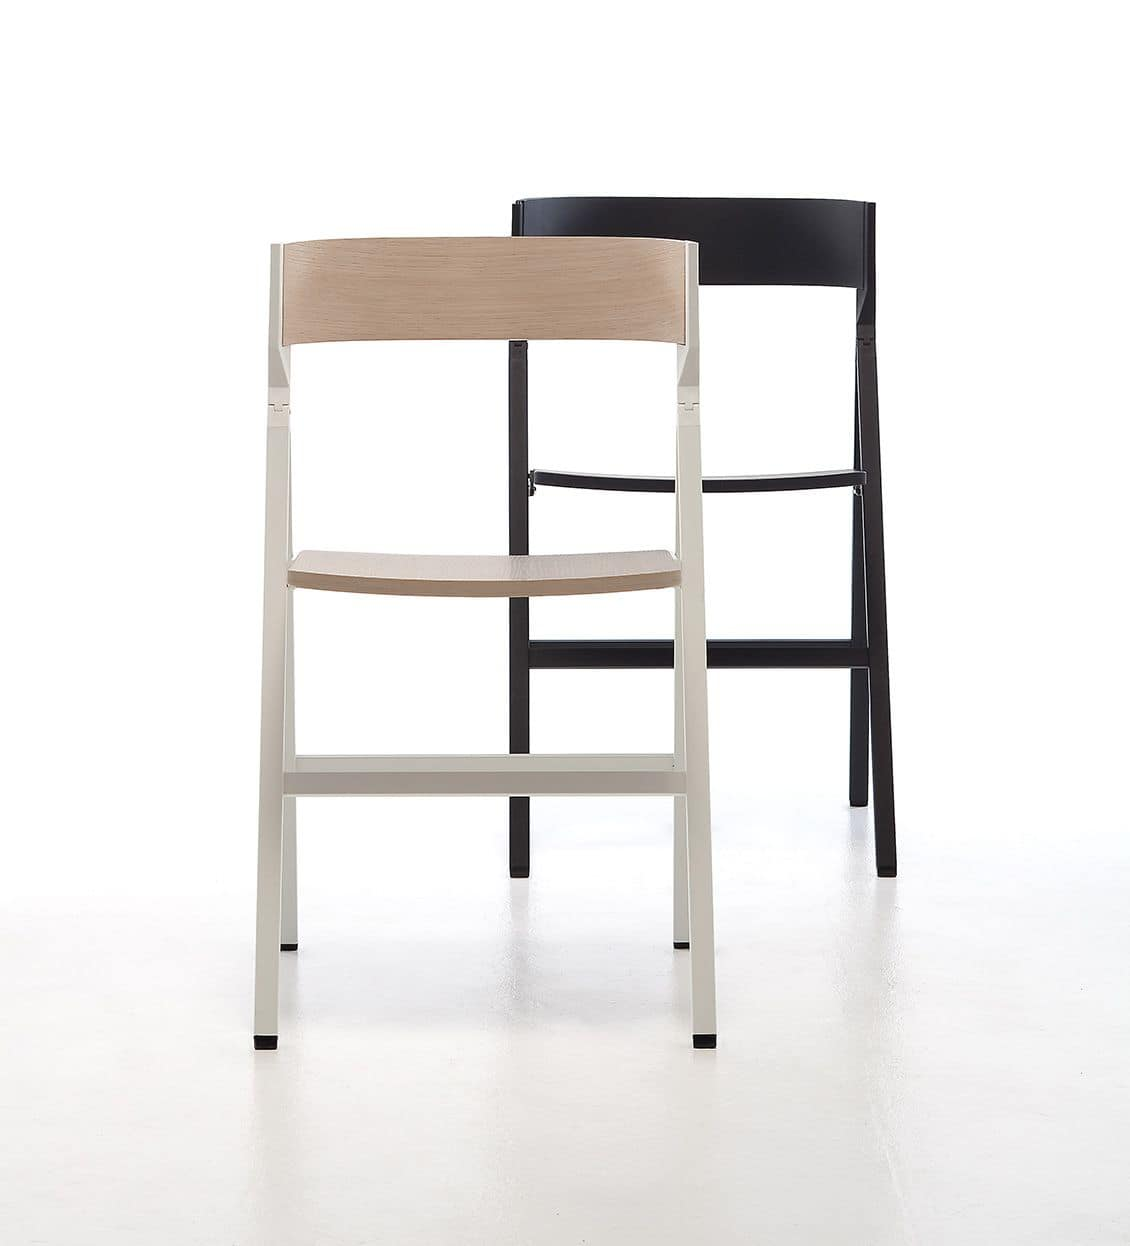 Klapp, Folding wooden chair ideal for contract use